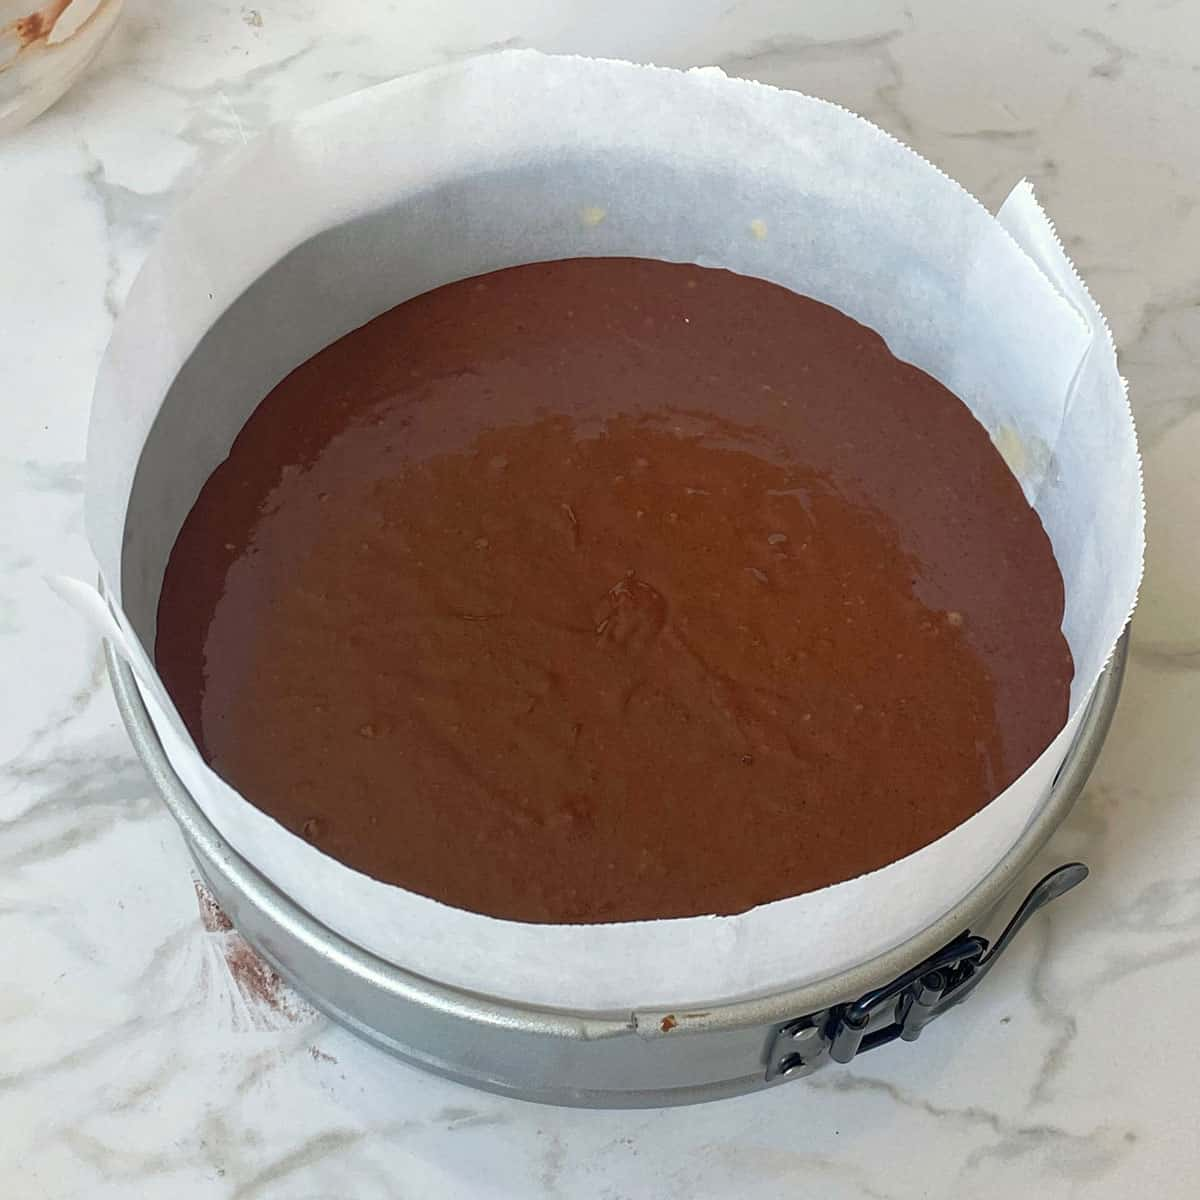 Chocolate cake batter in a lined tin on a bench.